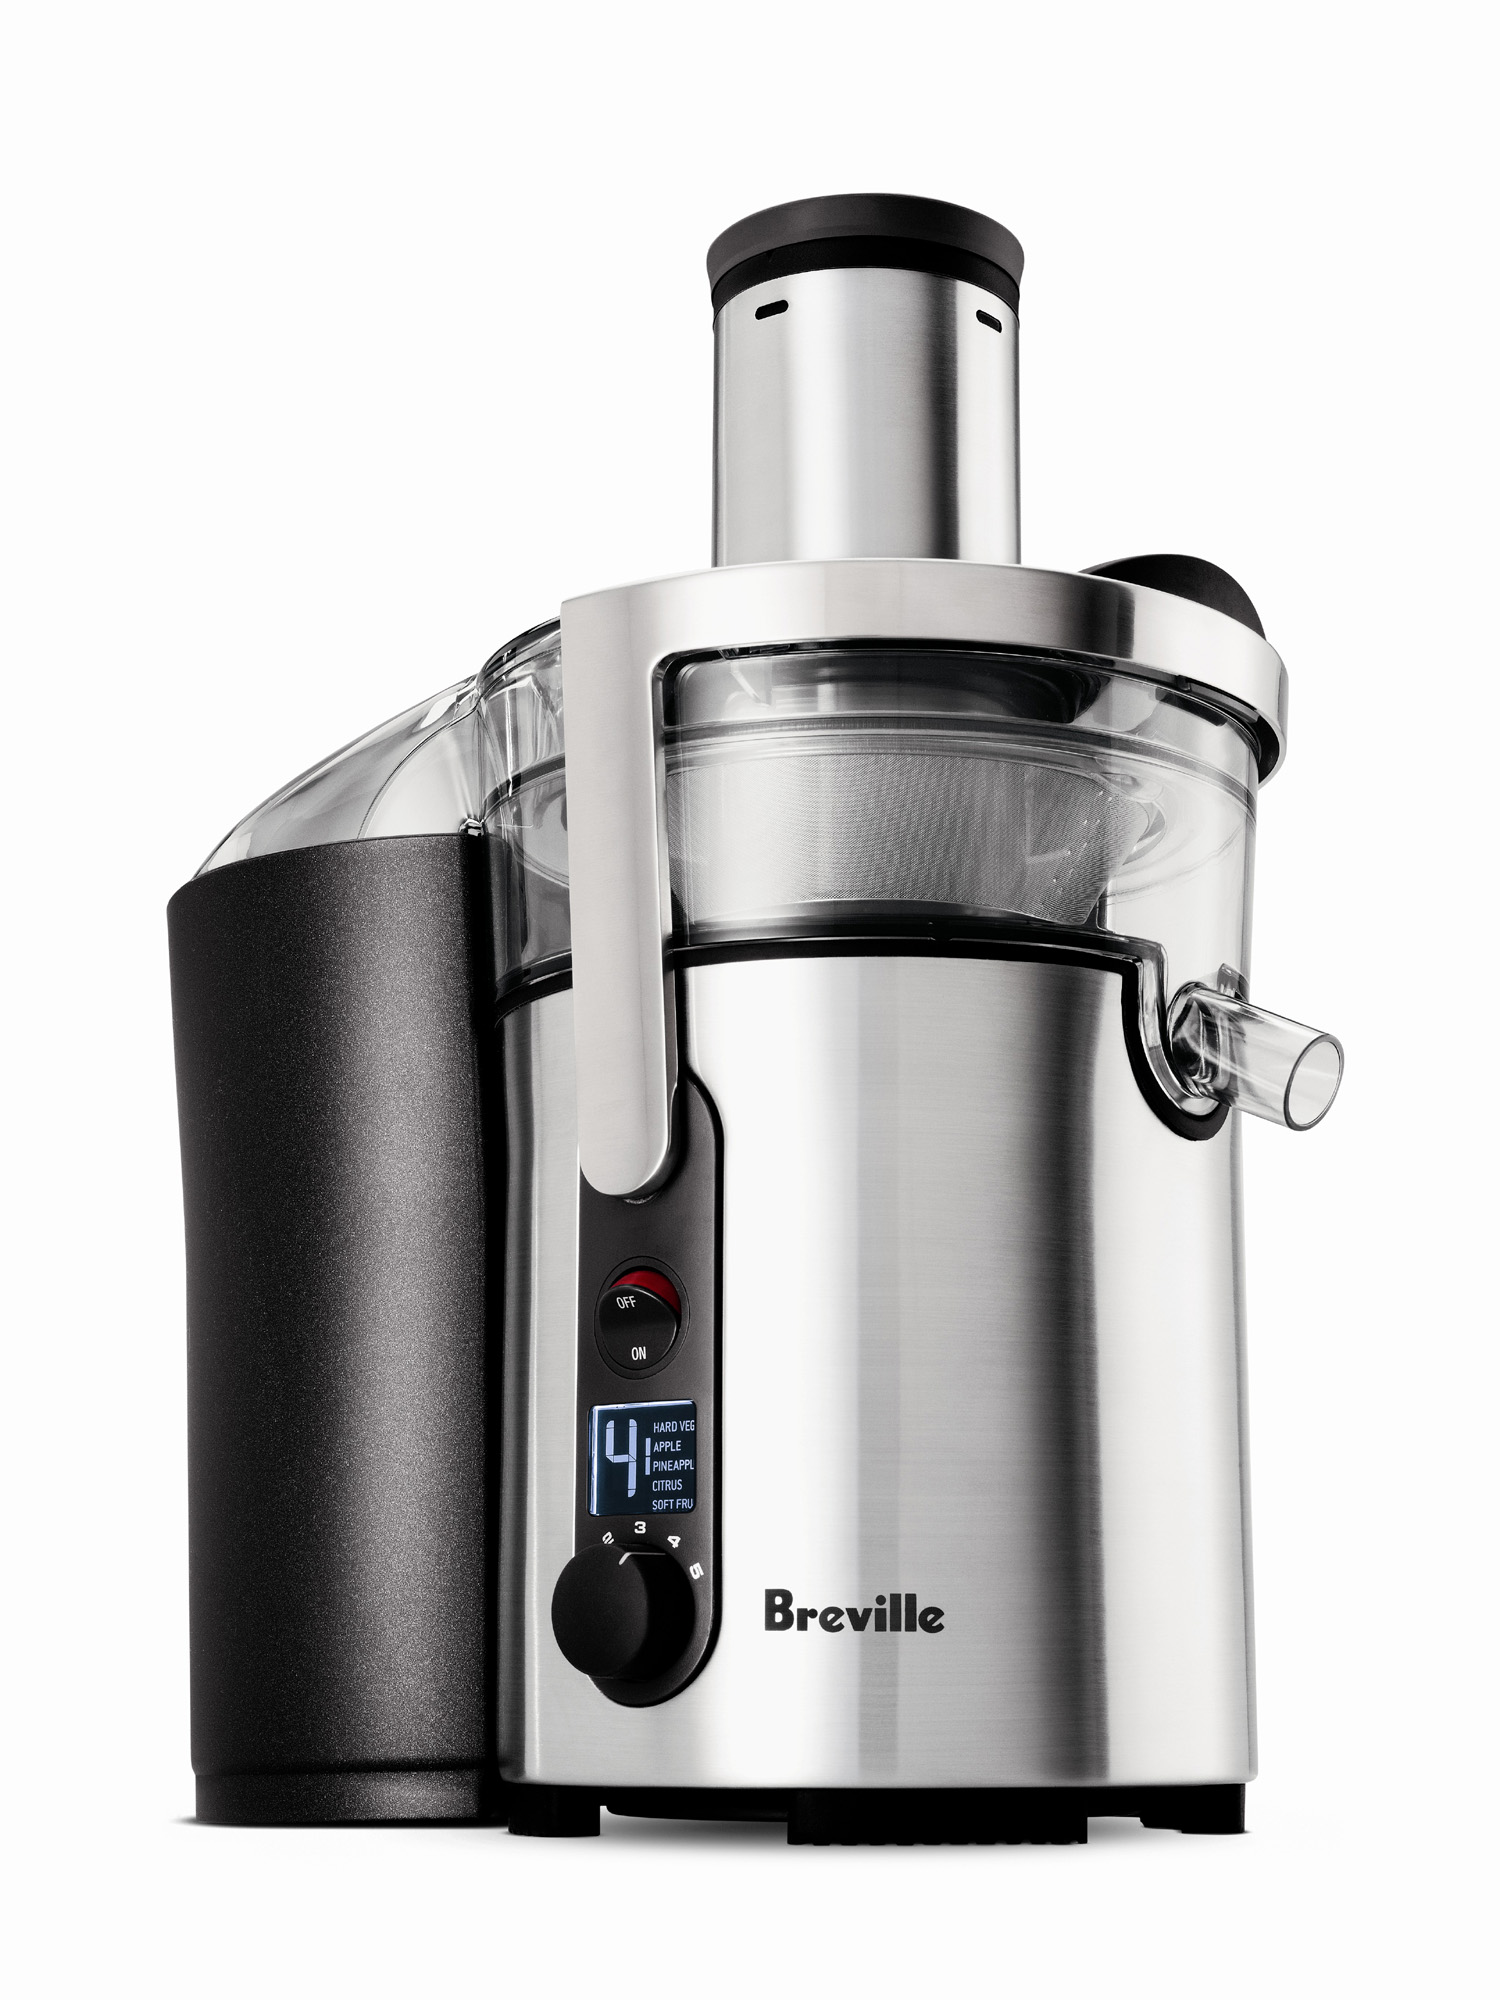 Breville ikon Stainless Steel Multi-Speed Juice Fountain